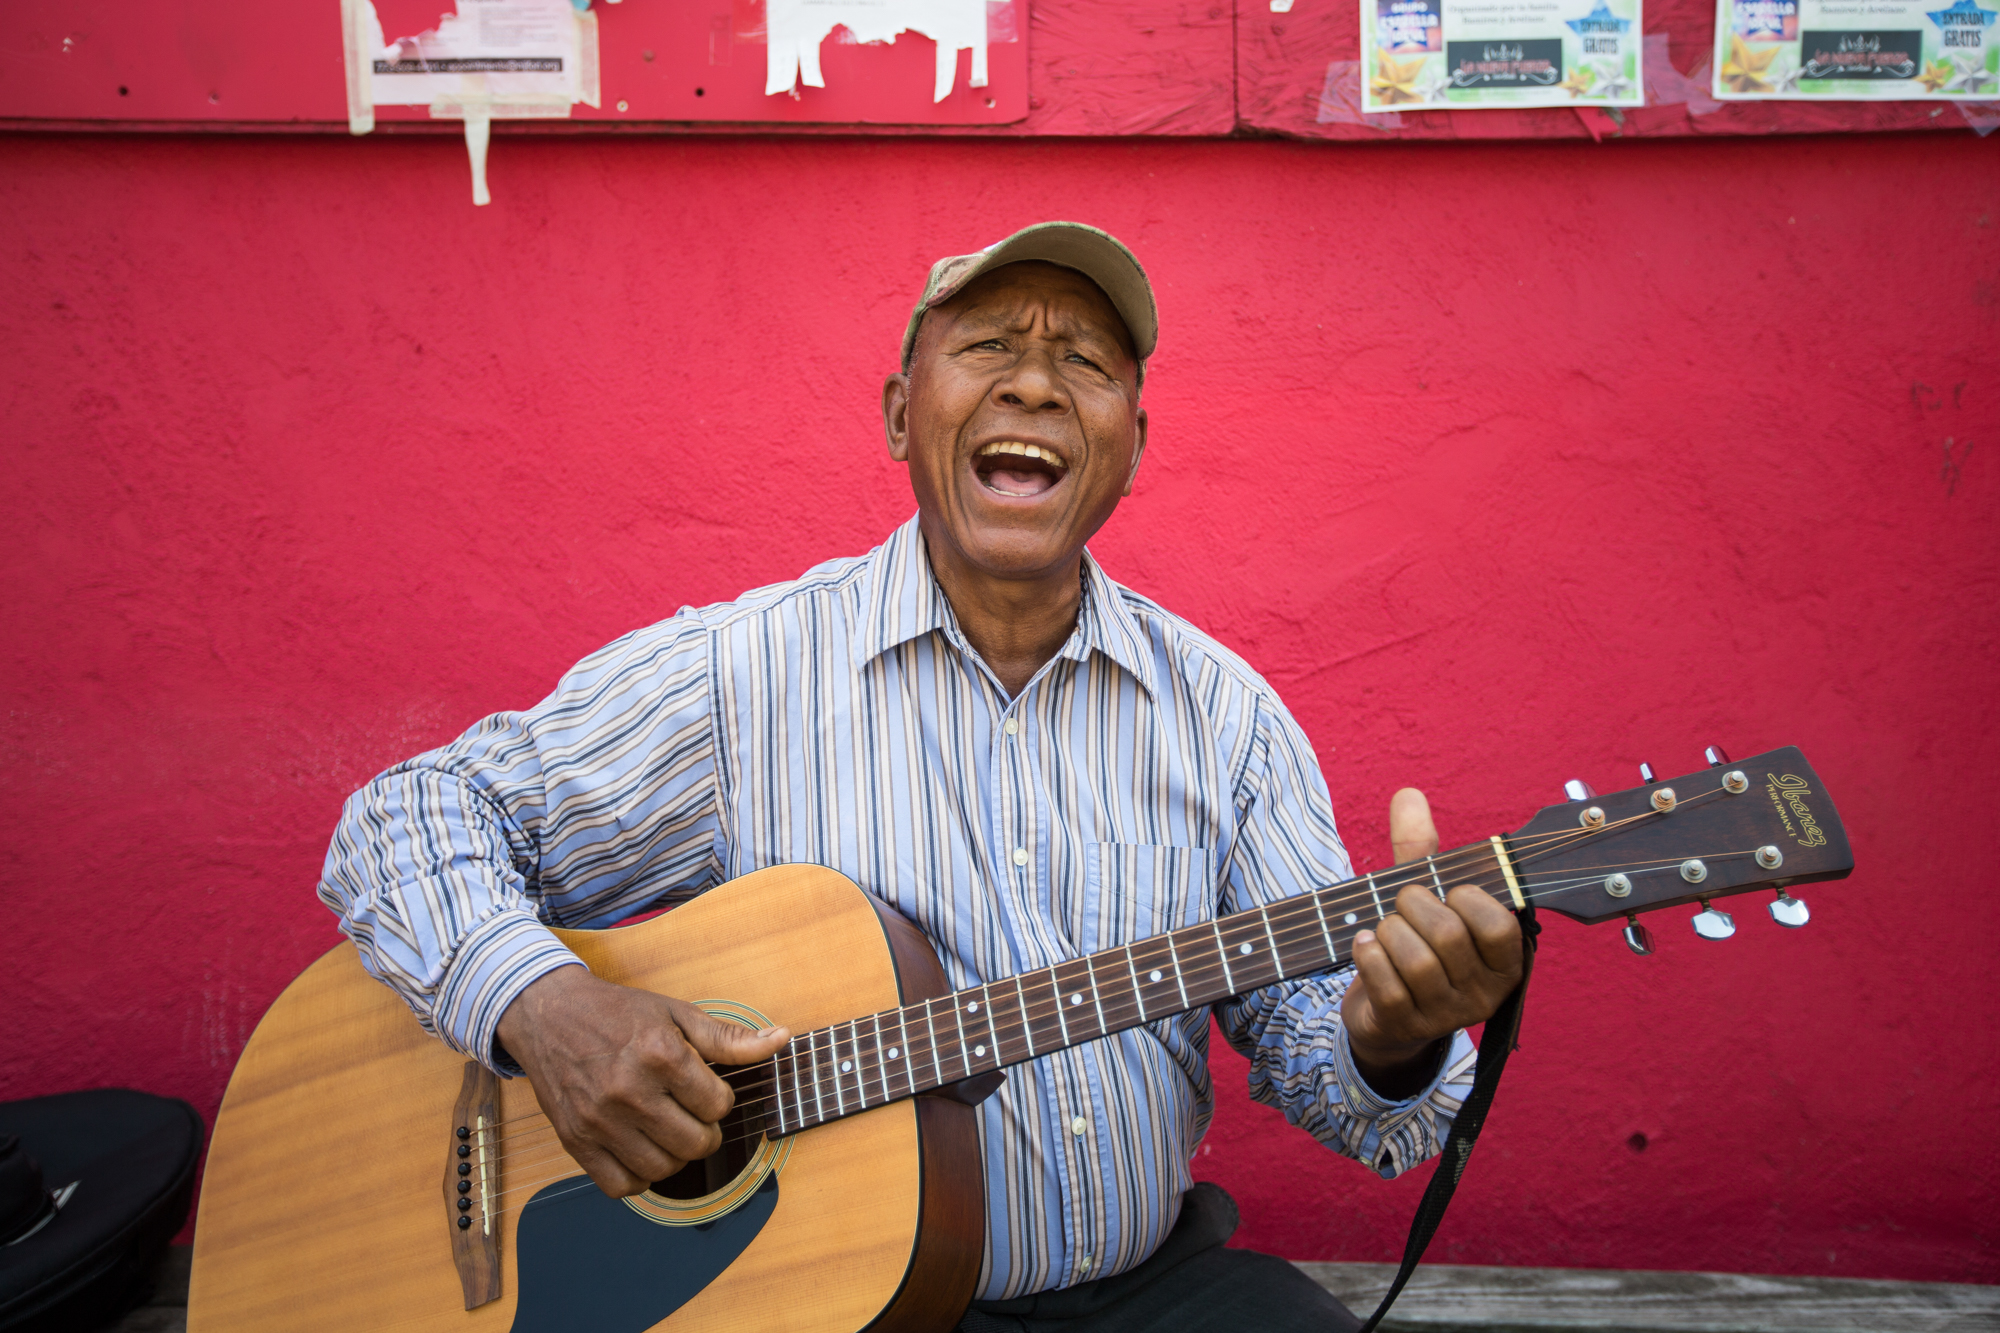 Martin C. Quiterio of Rockford sings a Mexican song and eats a frozen drink outside a shop on Friday, July 13, 2018. The National Weather Service issued a hazardous weather outlook Friday for portions of North Central